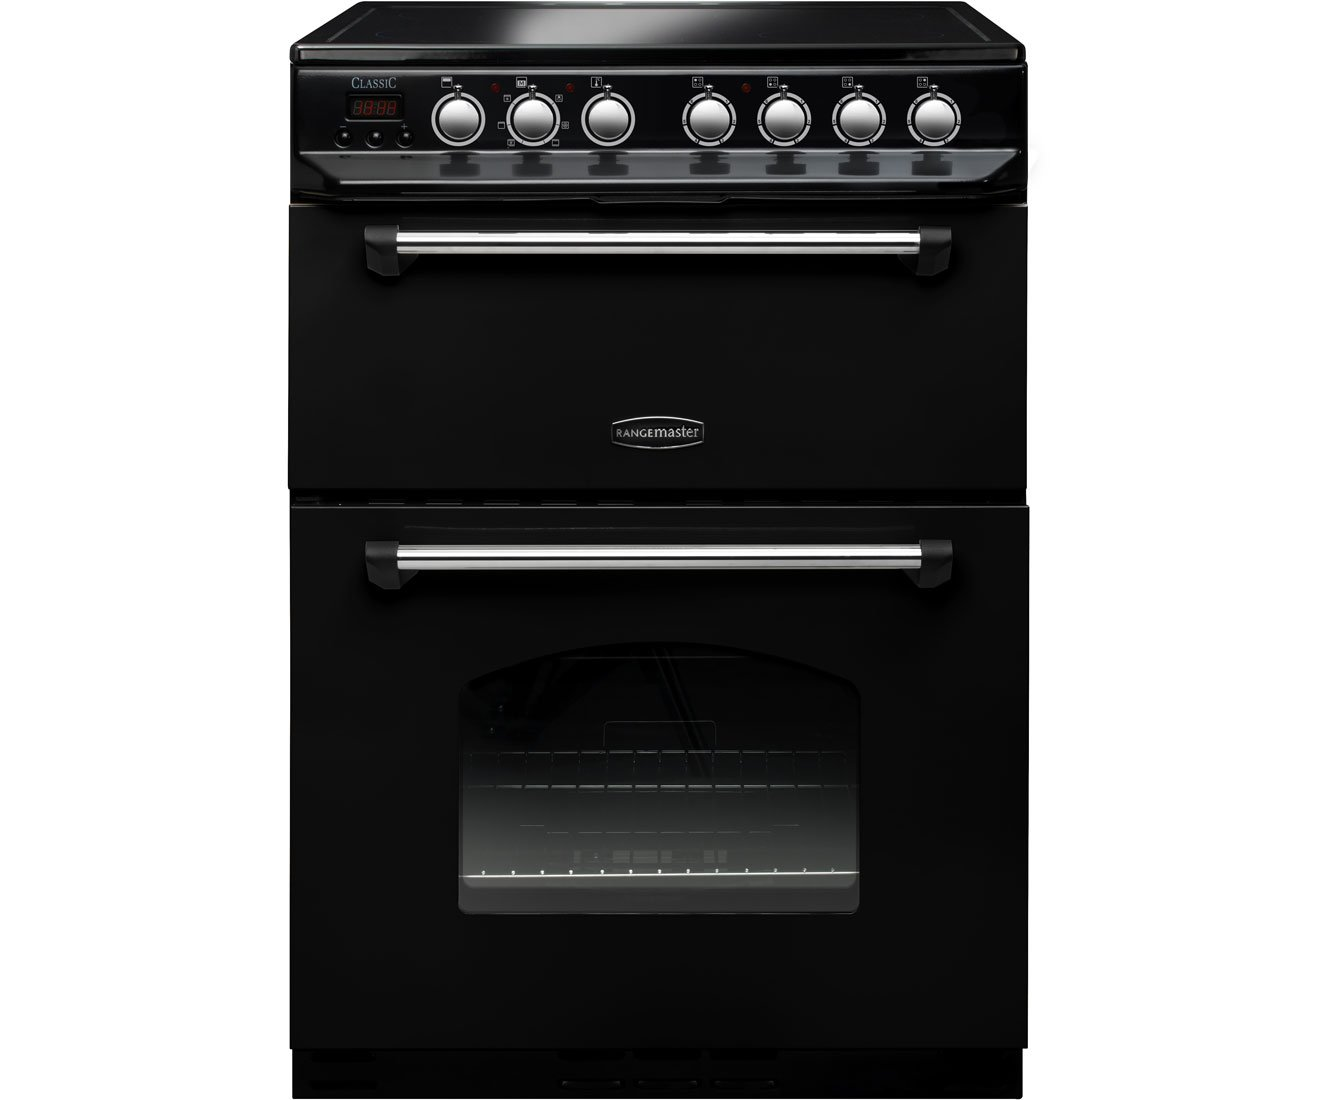 61FRNmtx8FL - Rangemaster 10733 Classic 60cm Electric Cooker with Double Oven and Ceramic Hob Black And Chrome